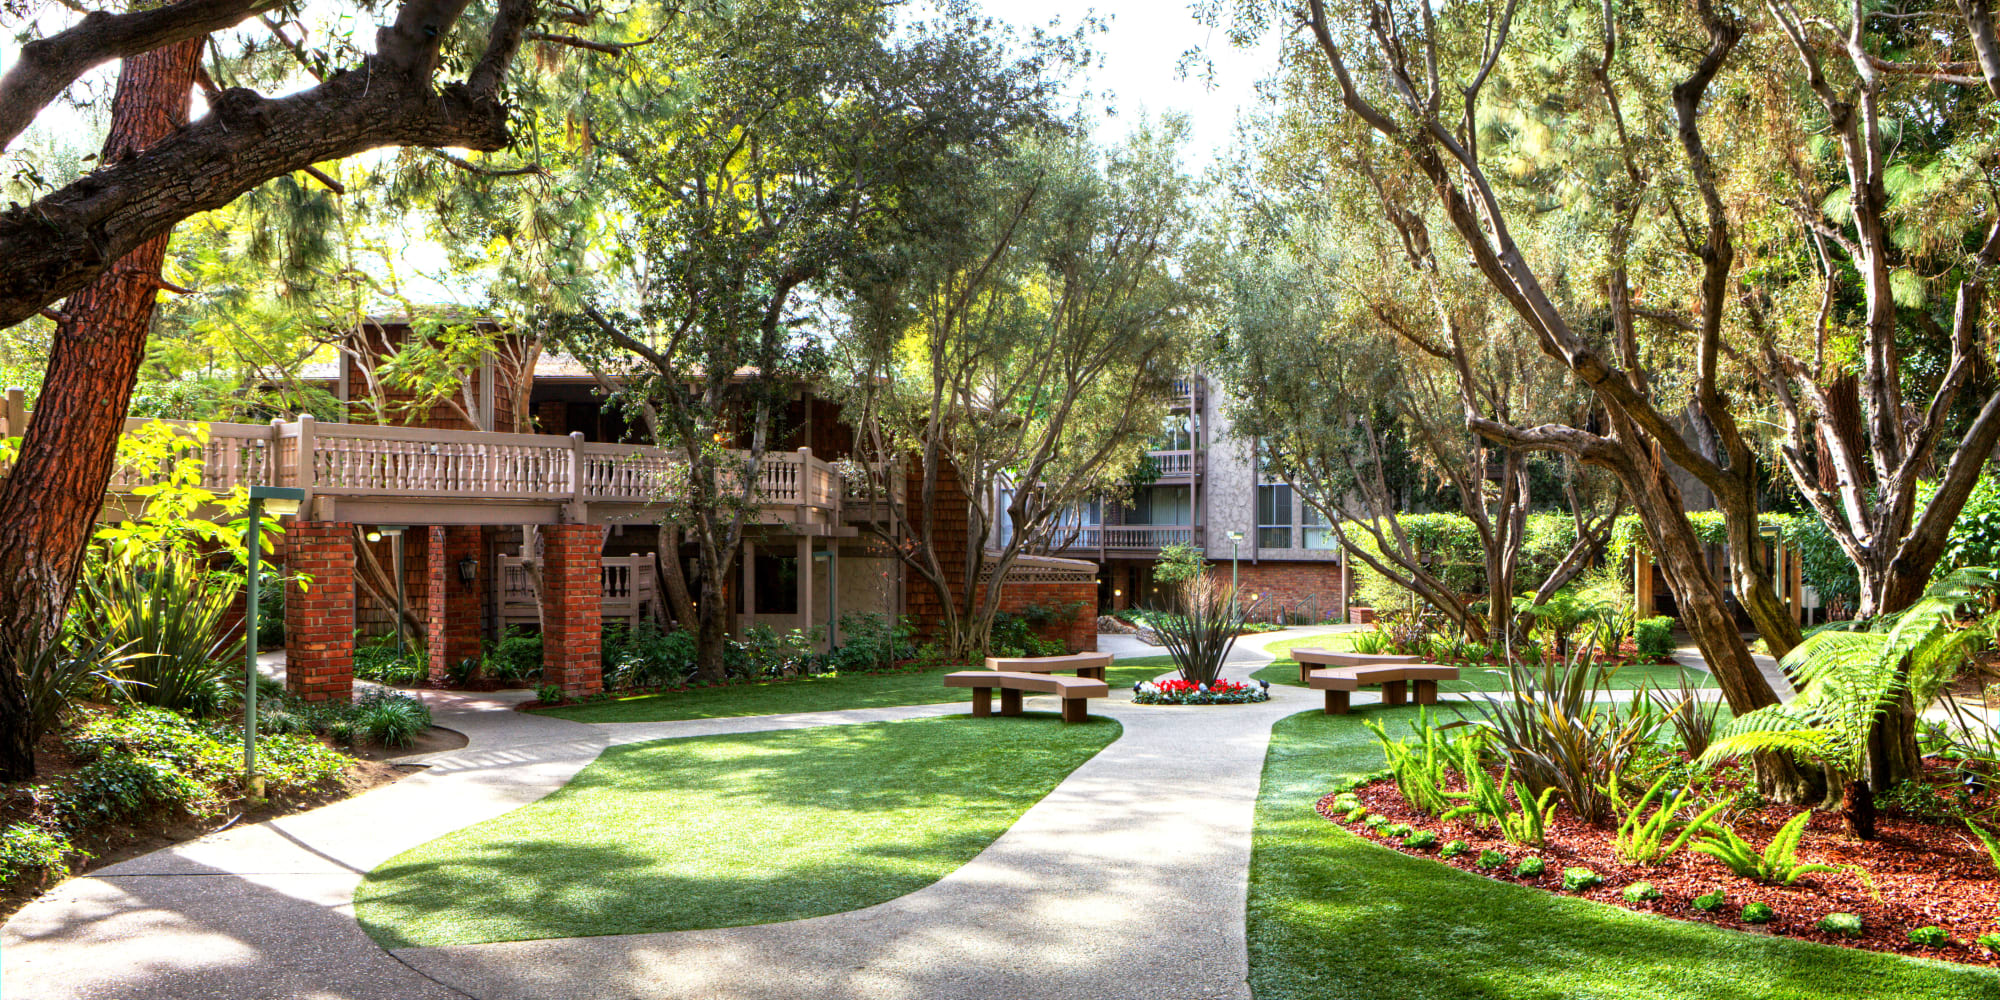 Sun filtering through mature trees among professionally managed landscaping at The Meadows in Culver City, California